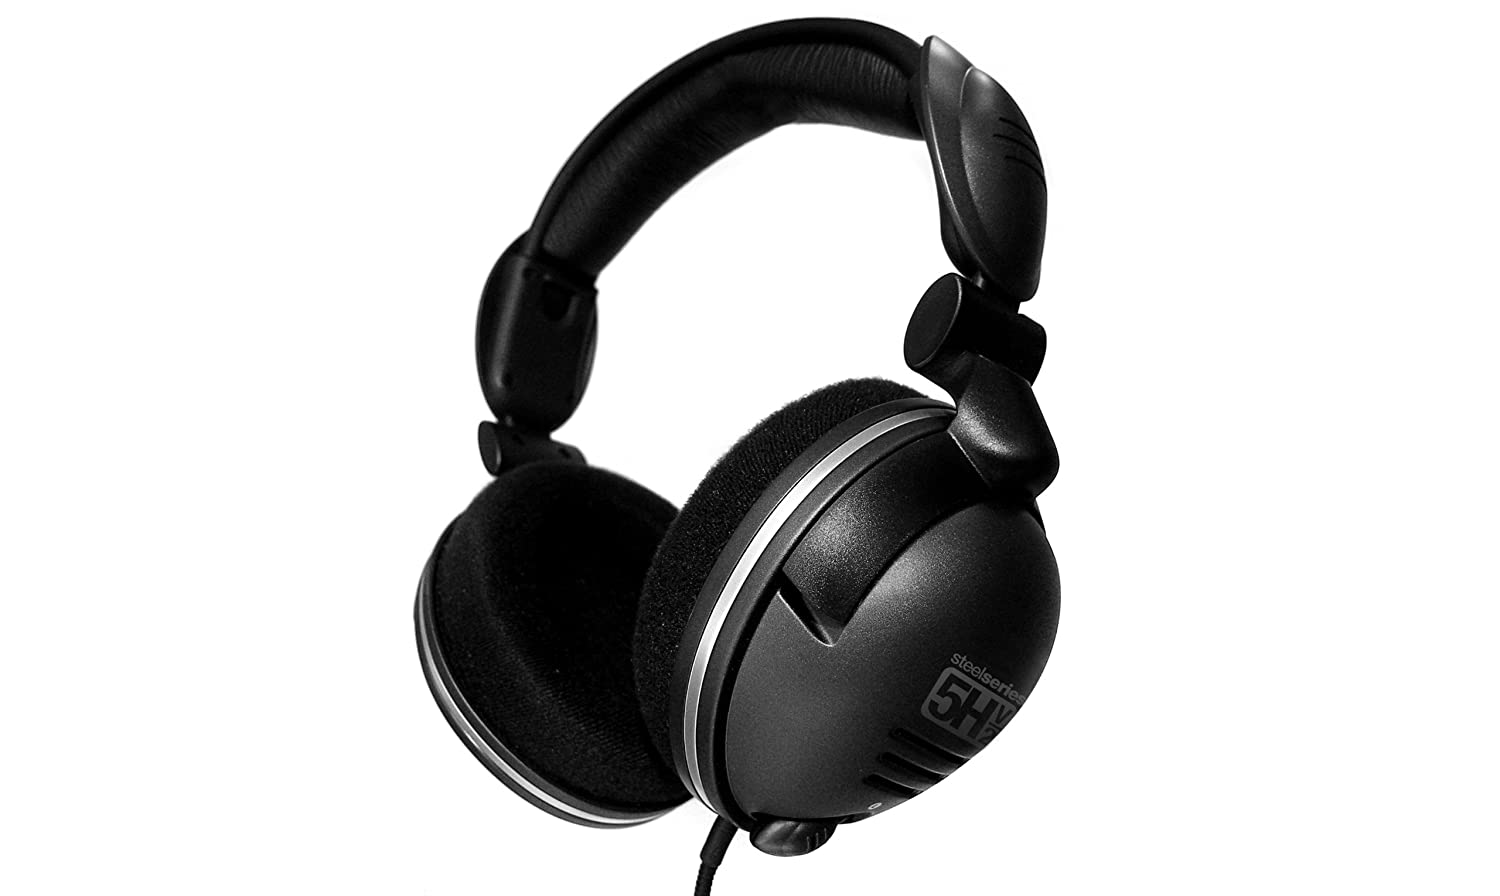 Steelseries 5h V2 Usb Headset Pc Video Games Soundcard Steel Sound 5hv2 Virtual 71 Surround